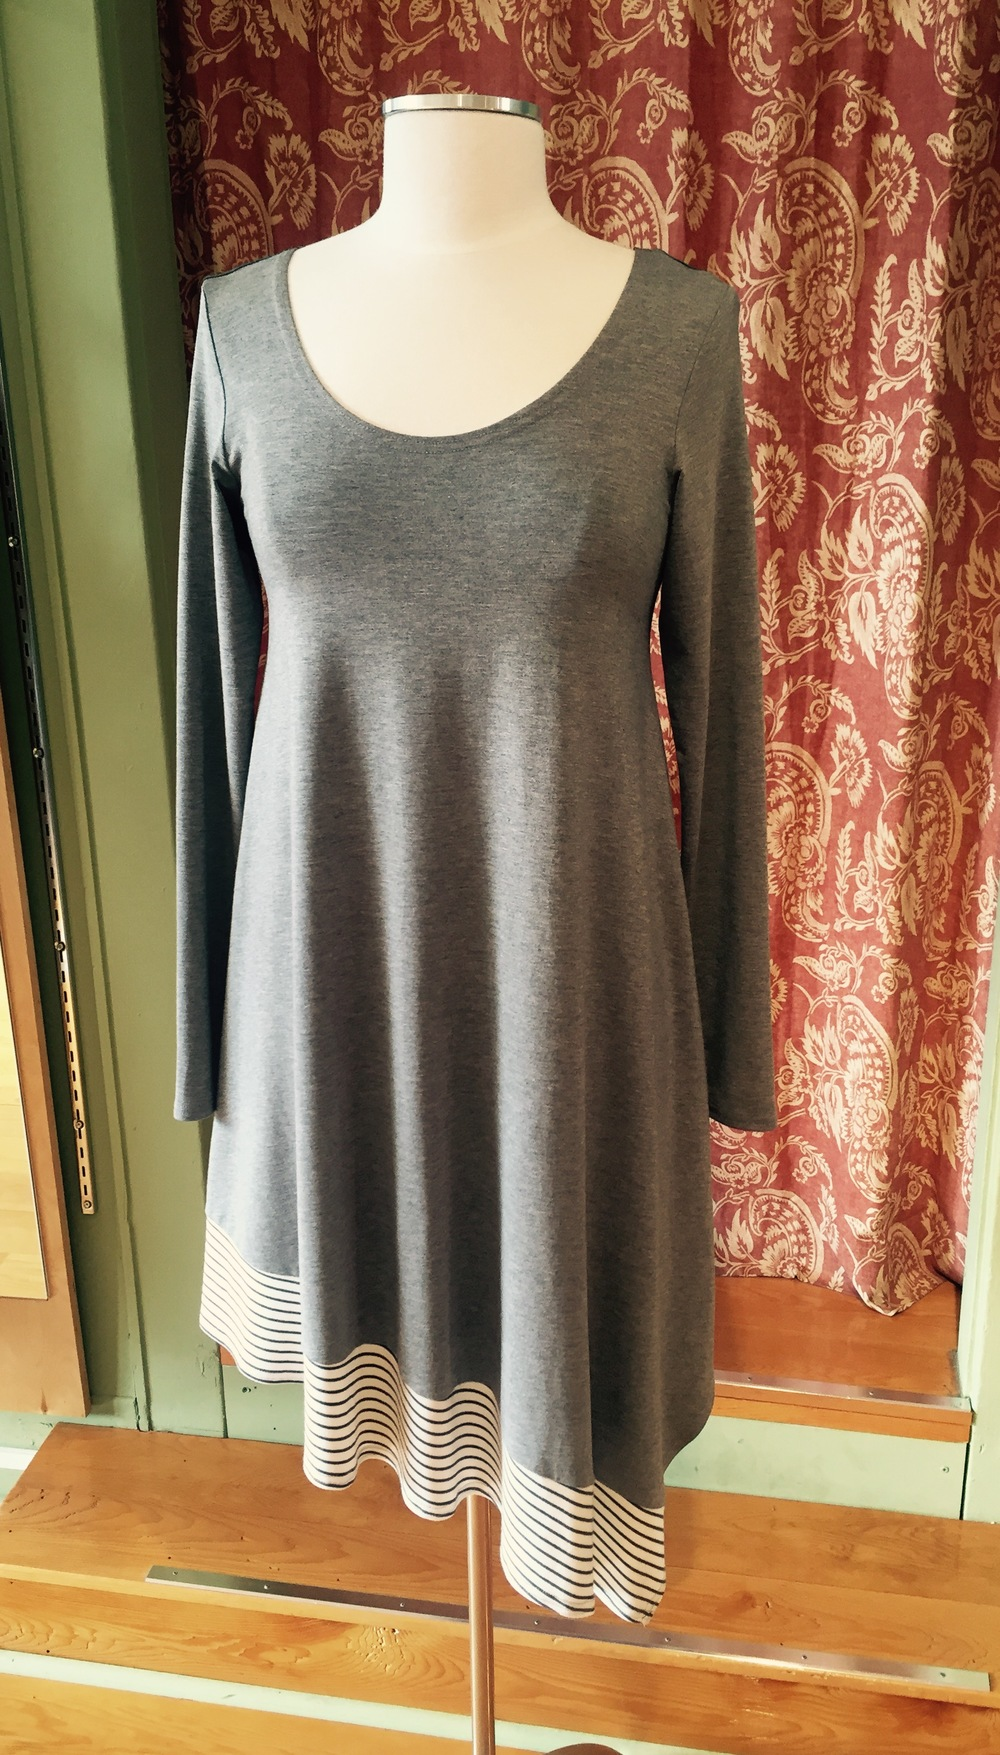 Exhale Tunic, $125